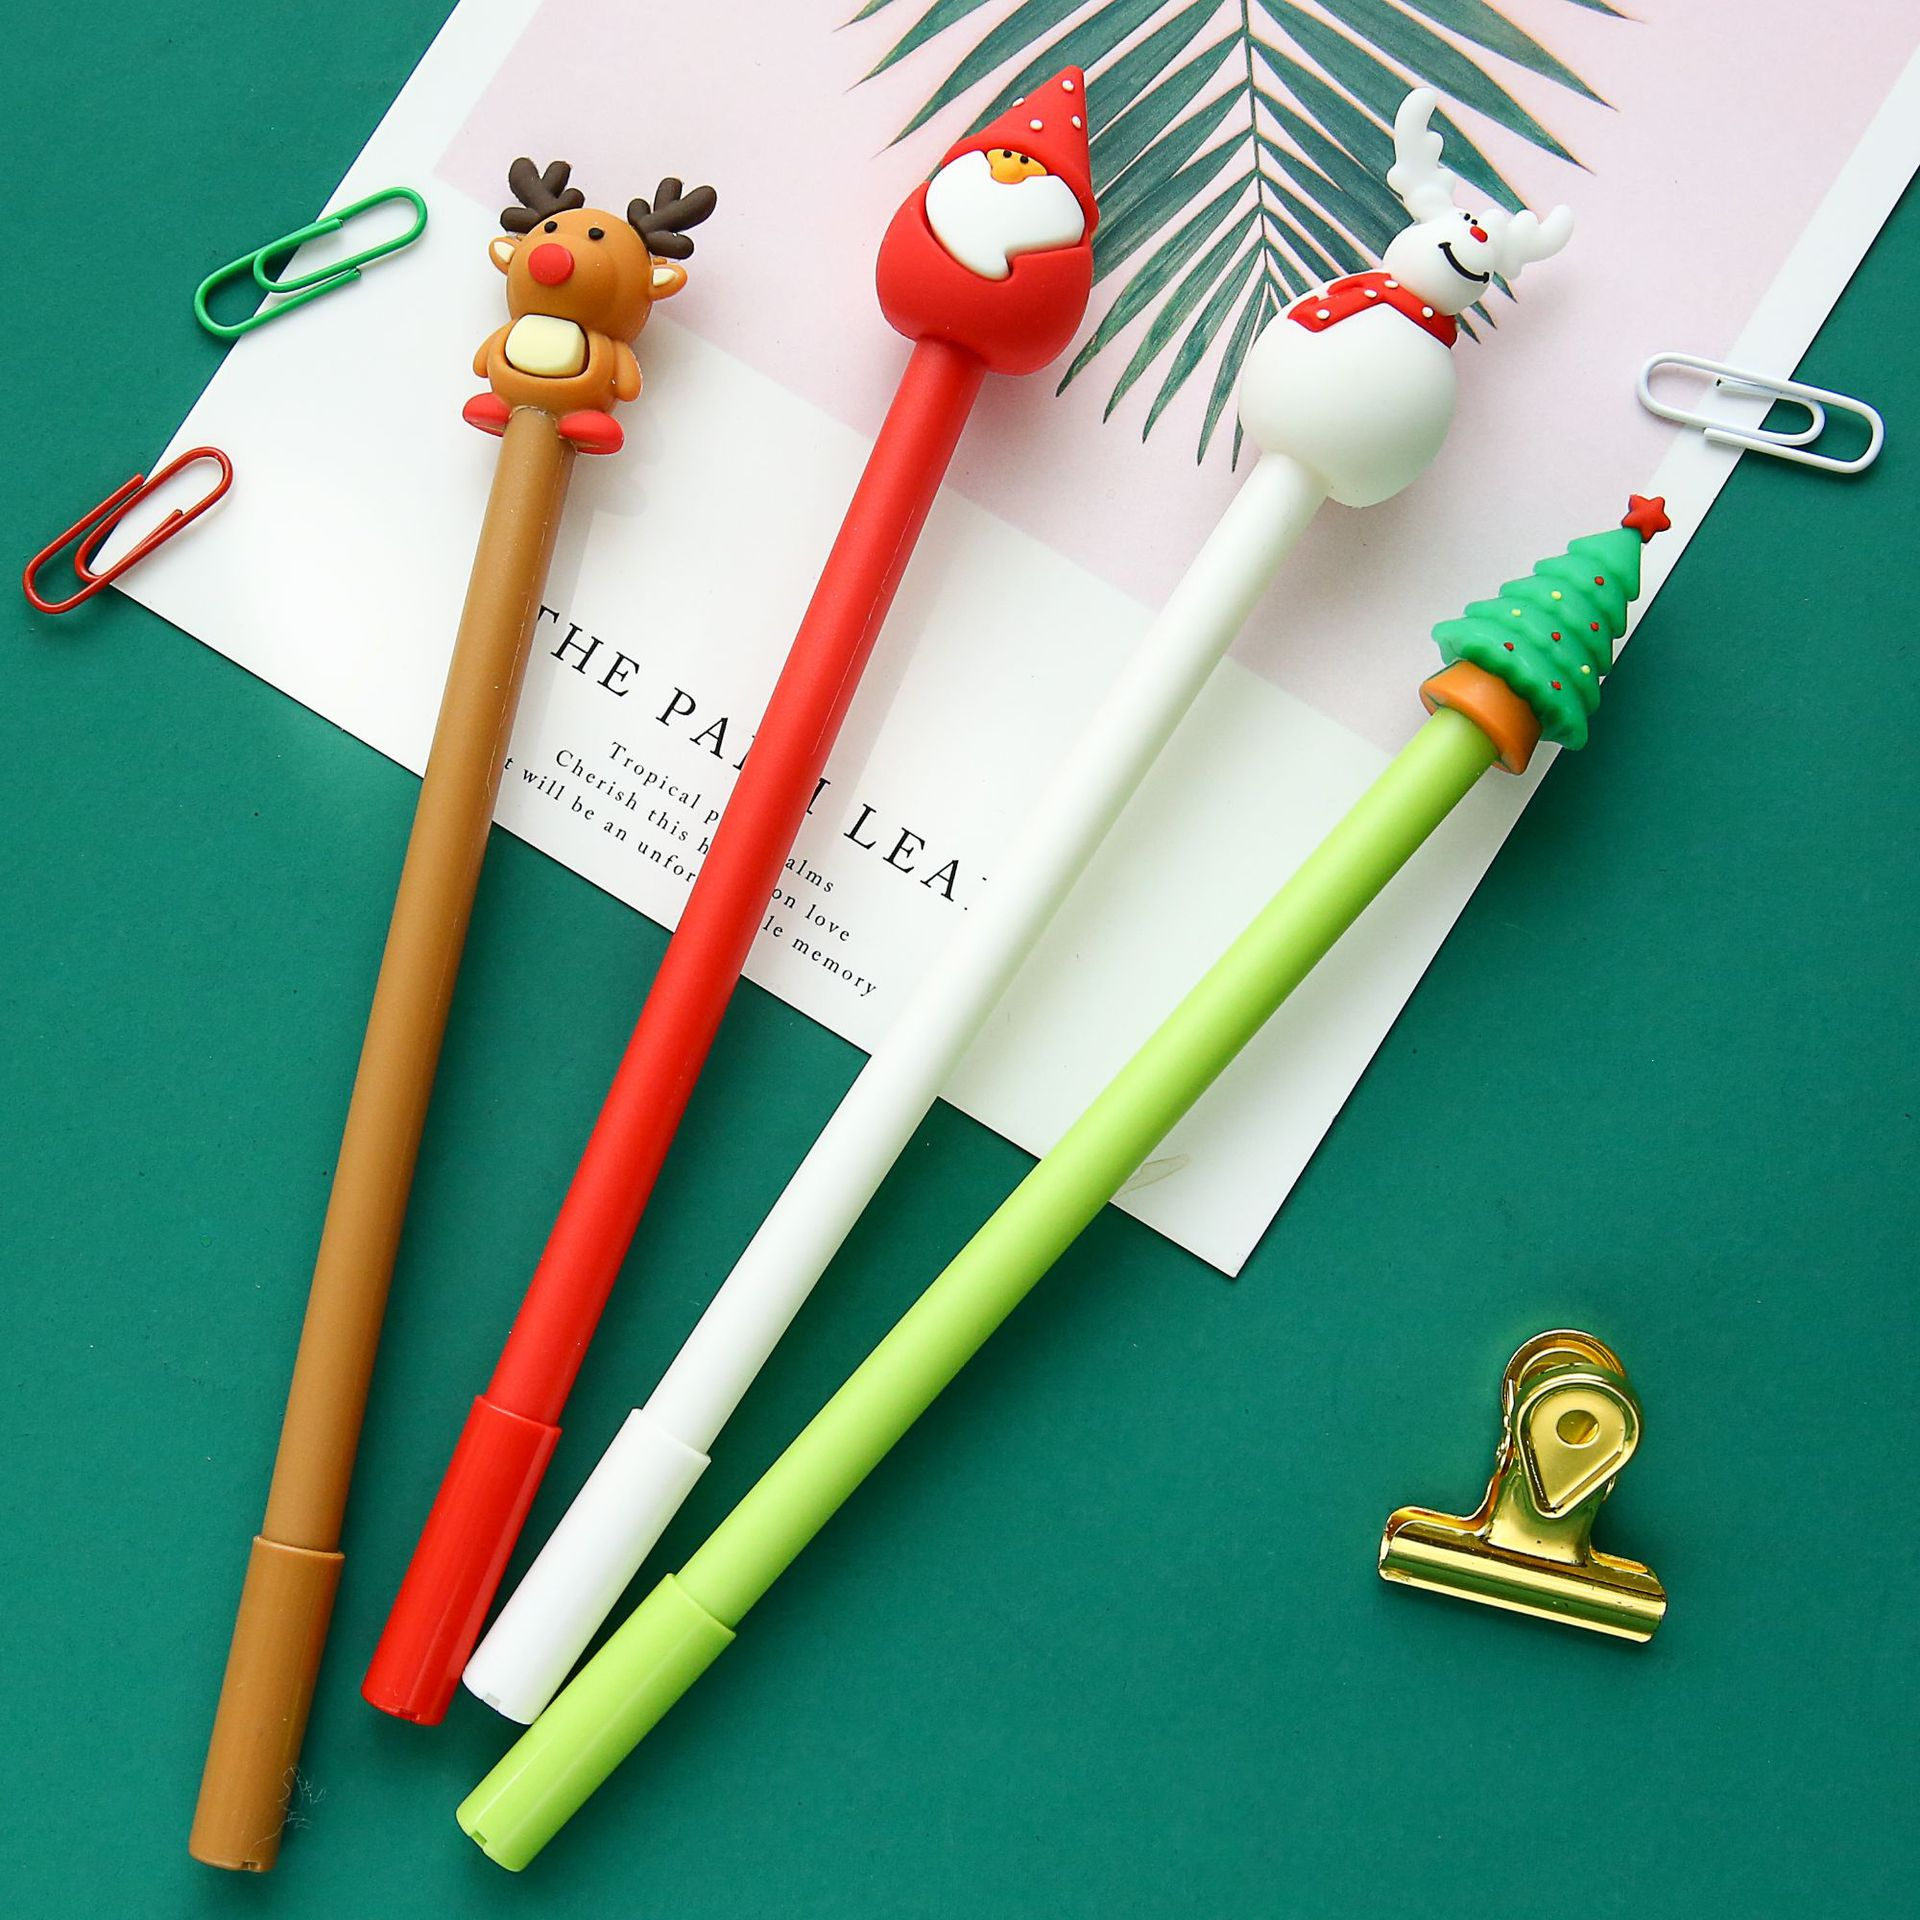 2pcs Kawaii Writing Pens Christmas Santa Claus Black Gel Ink Pens Pens For Writing Cute Stationery Office School Supplies 0.5